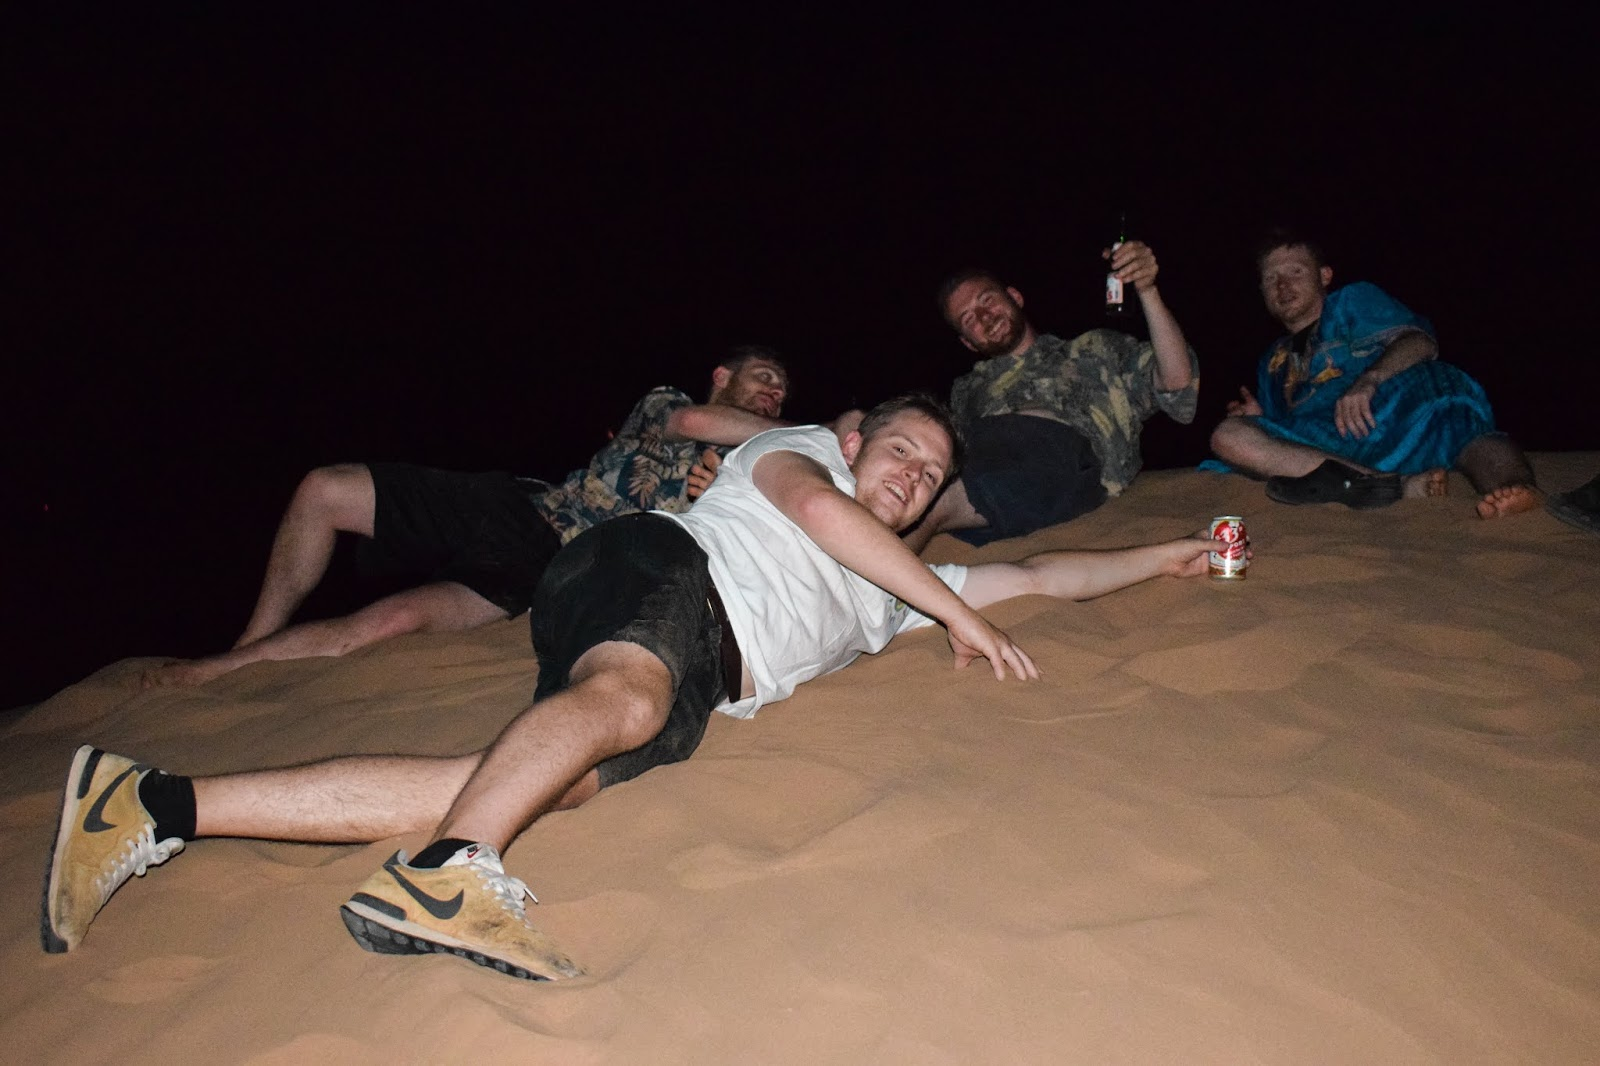 Chilling on sand dunes